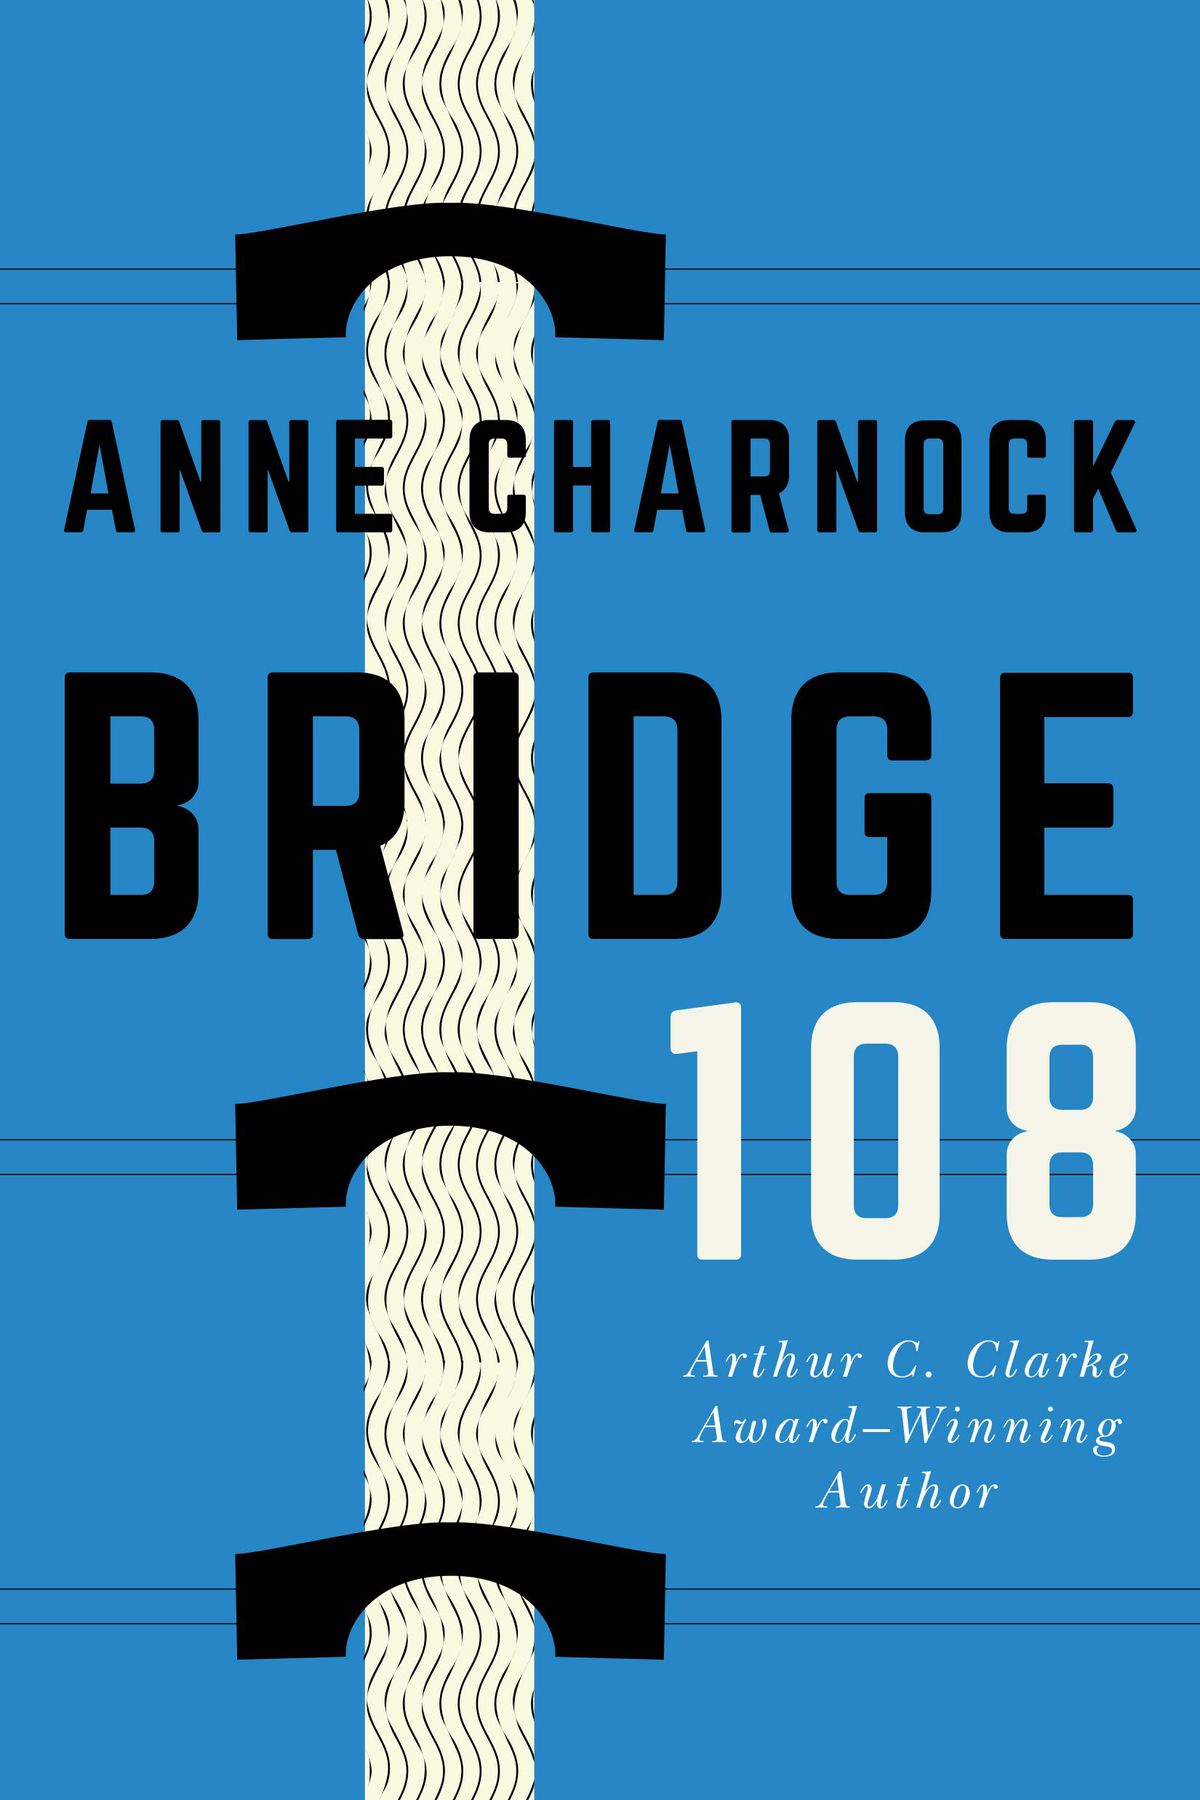 a bridge on the cover of Bridge 108 by Anne Charnock